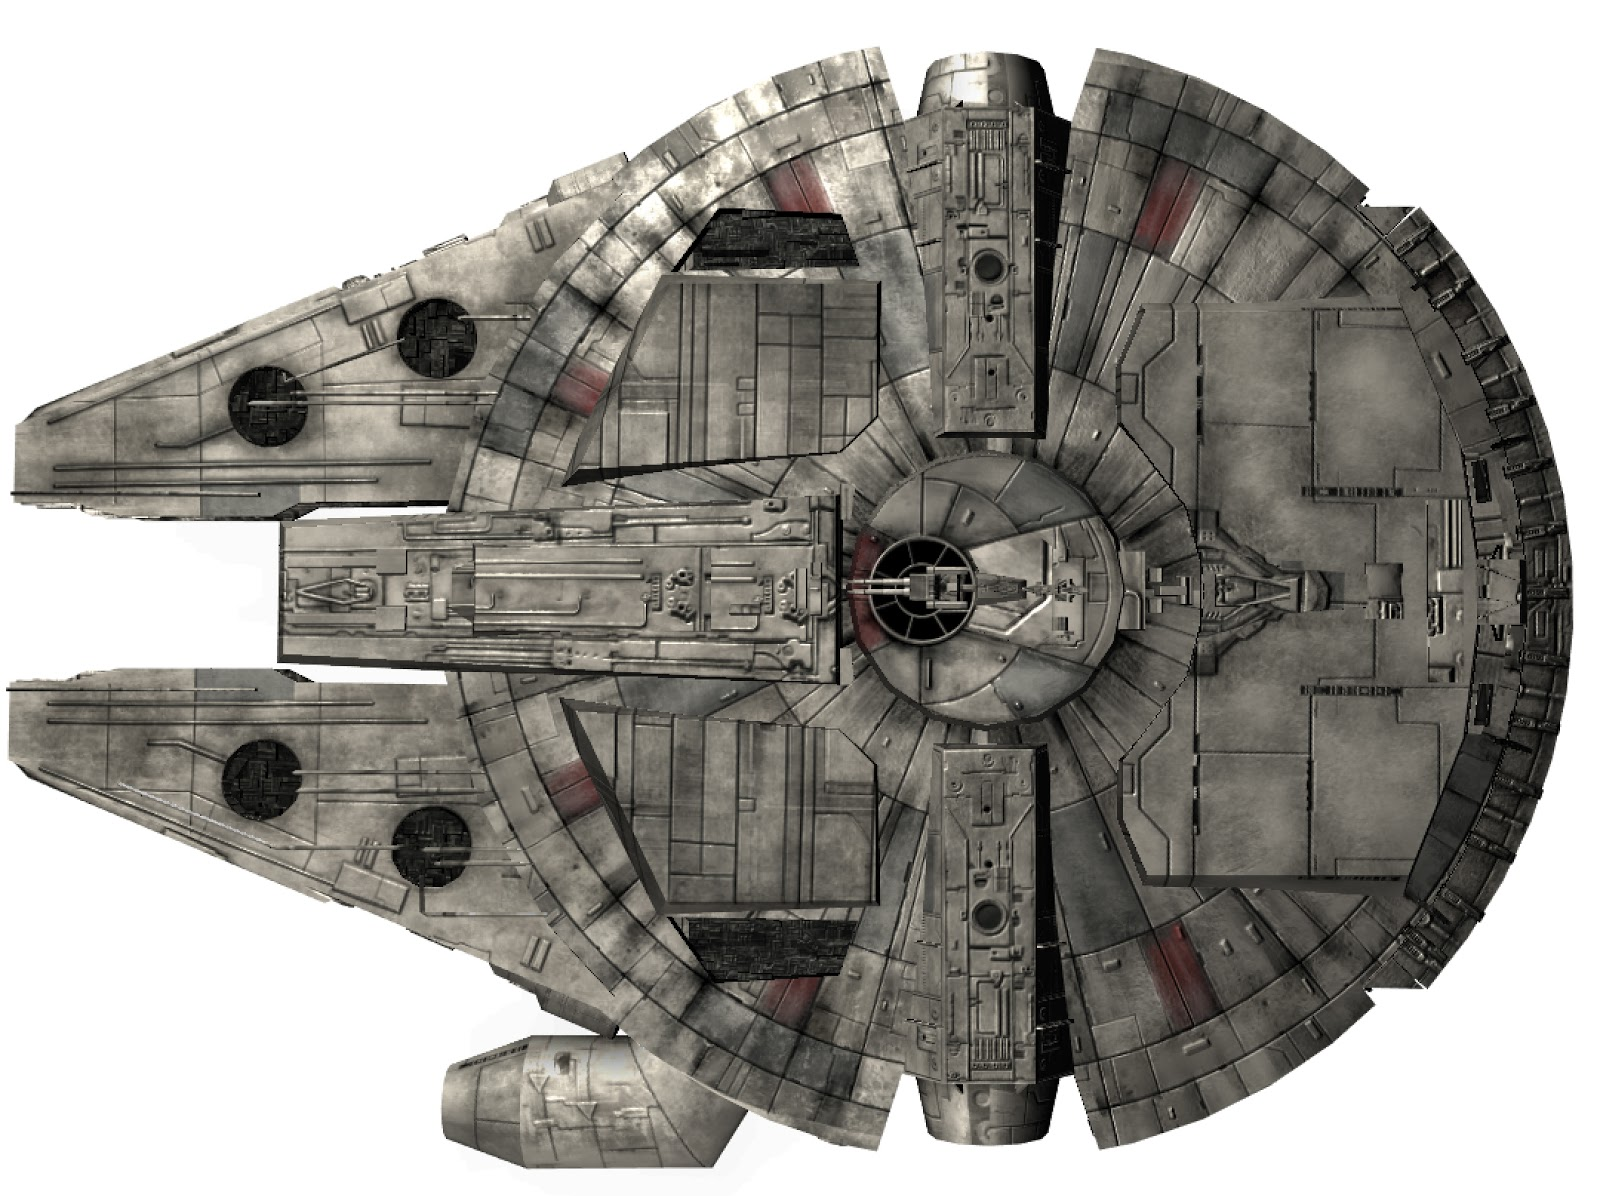 Game Ready Star Wars Millennium Falcon 3D model - real time view - bottom